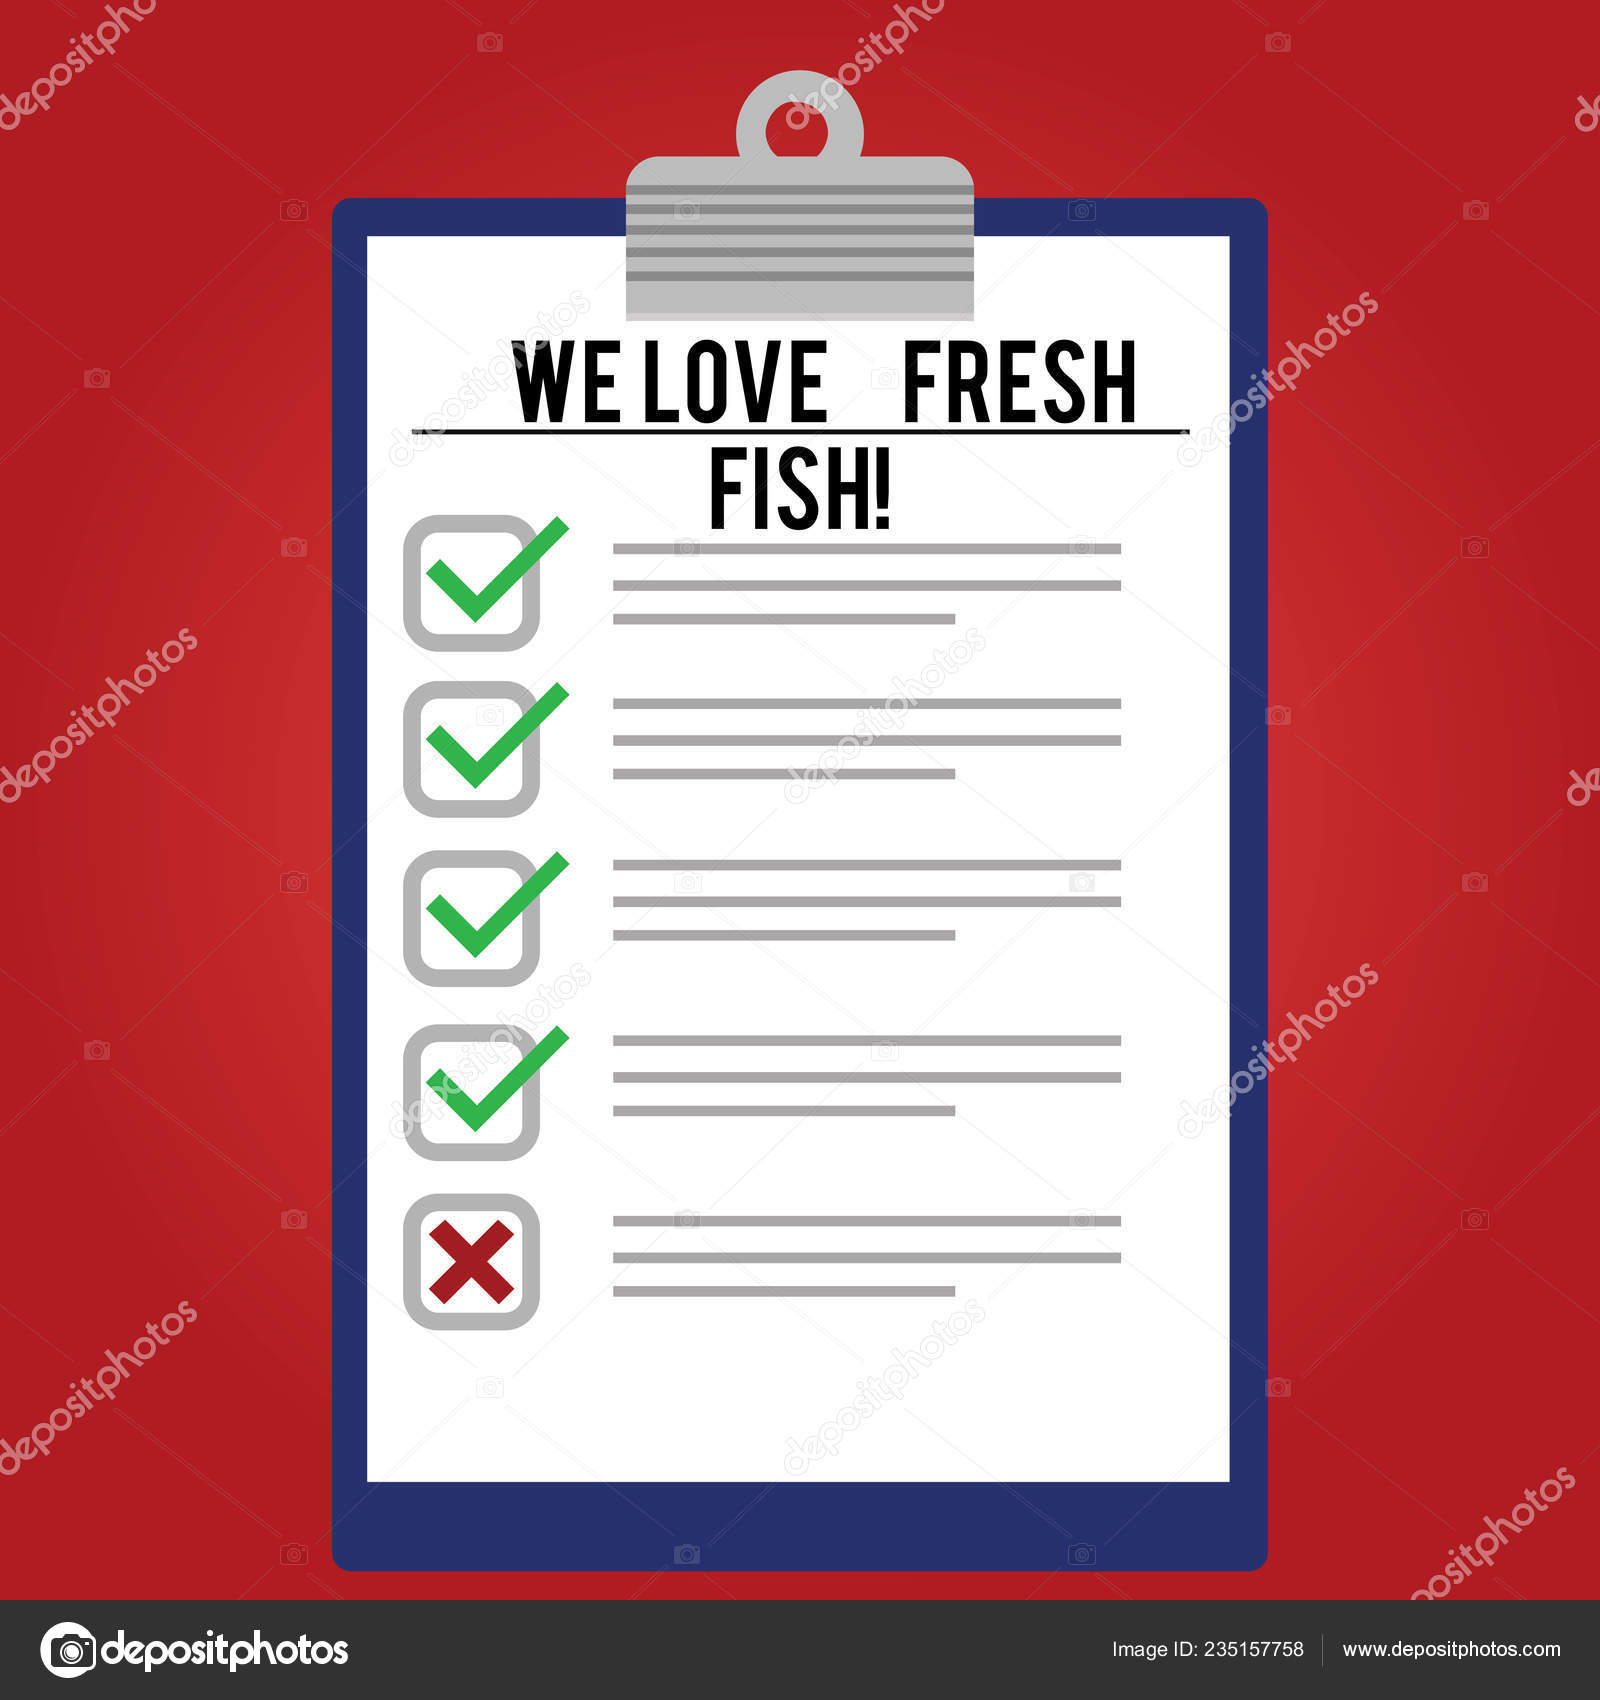 Handwriting Text Writing We Love Fresh Fish Concept Meaning Seafood Lovers Healthy Food Marine Cooking Culinary Arts Lined Color Vertical Clipboard With Check Box Photo Blank Copy Space Stock Photo Image